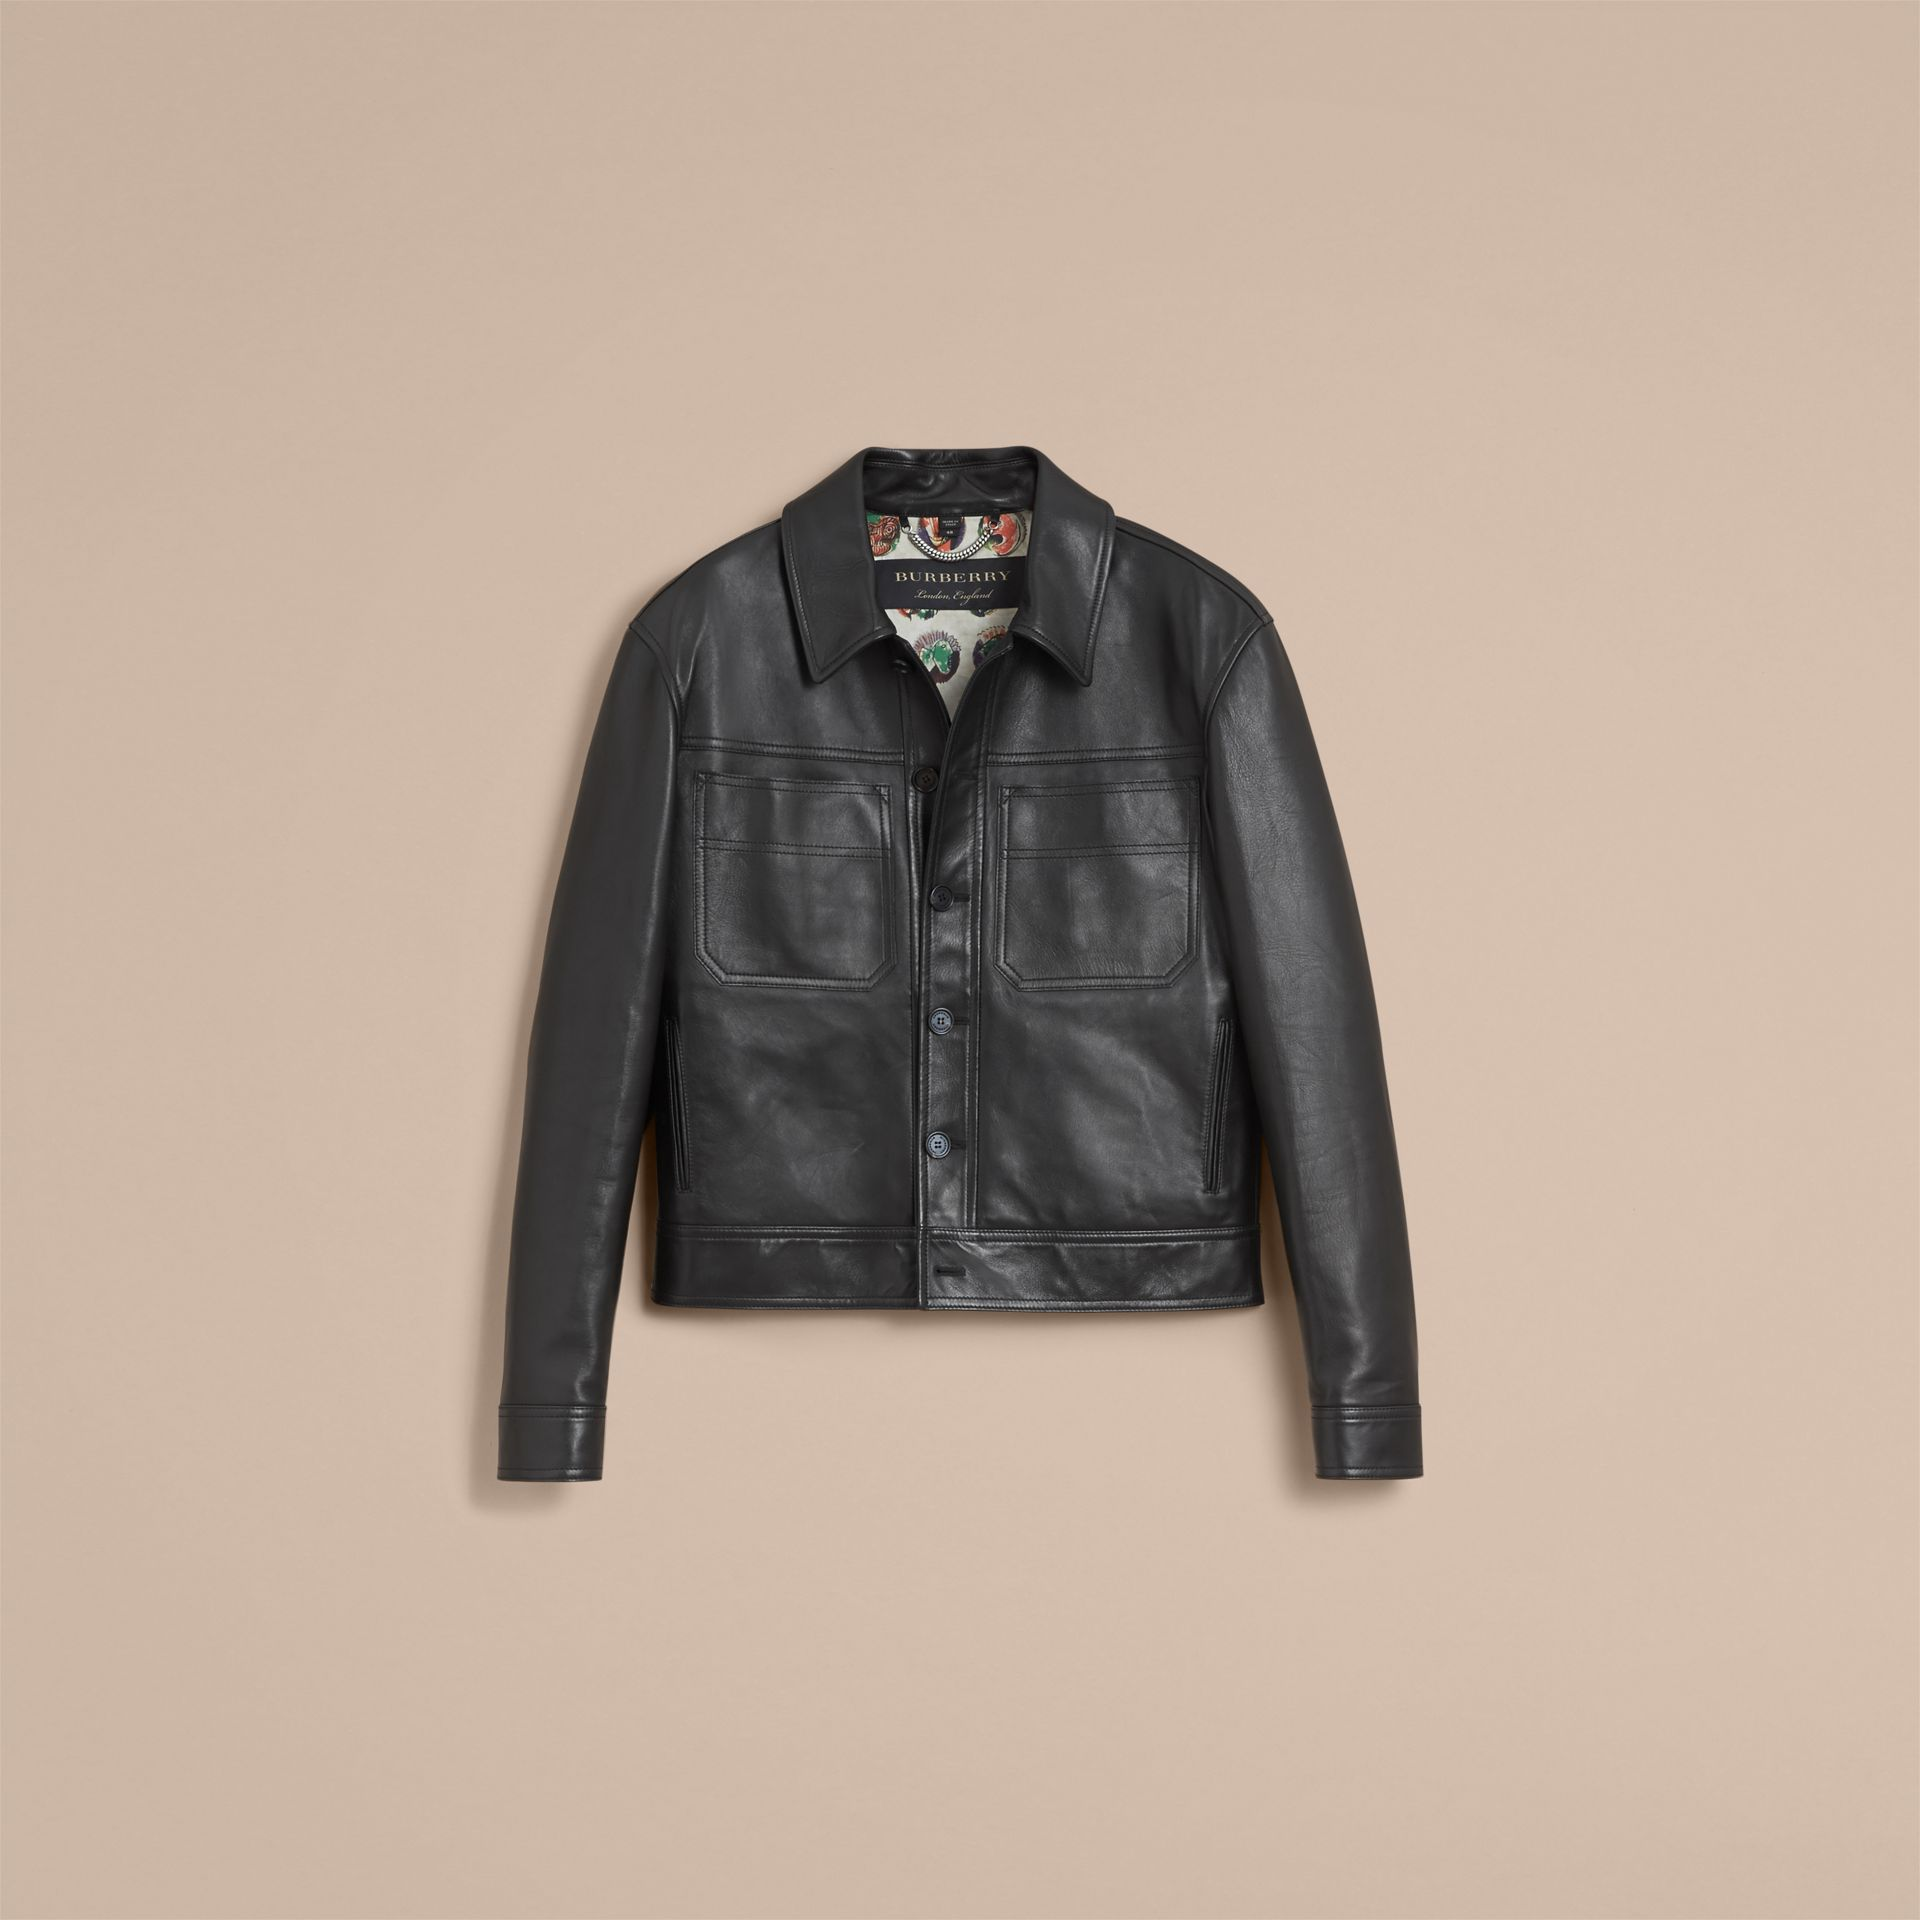 Leather Trucker Jacket with Pallas Heads Print Lining in Black - Men | Burberry Singapore - gallery image 4